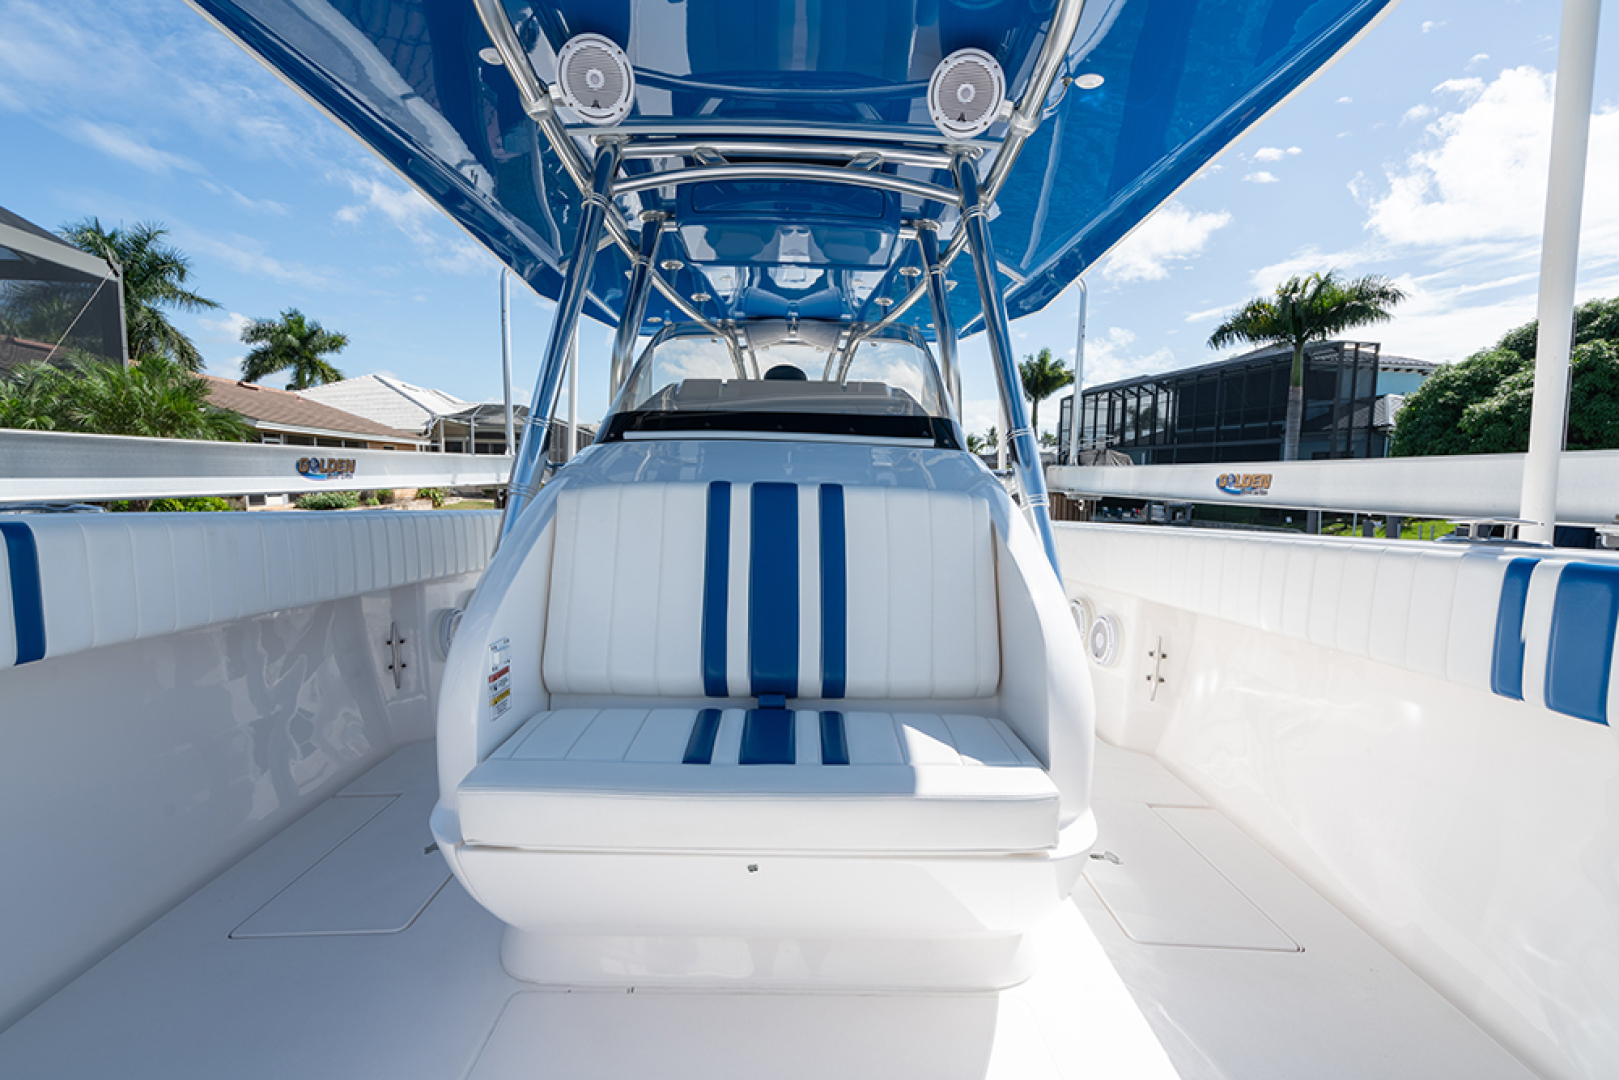 Intrepid-400 Center Console 2017-SPONTANEOUS Marco Island-Florida-United States-Seat in front of the helm-1537589 | Thumbnail